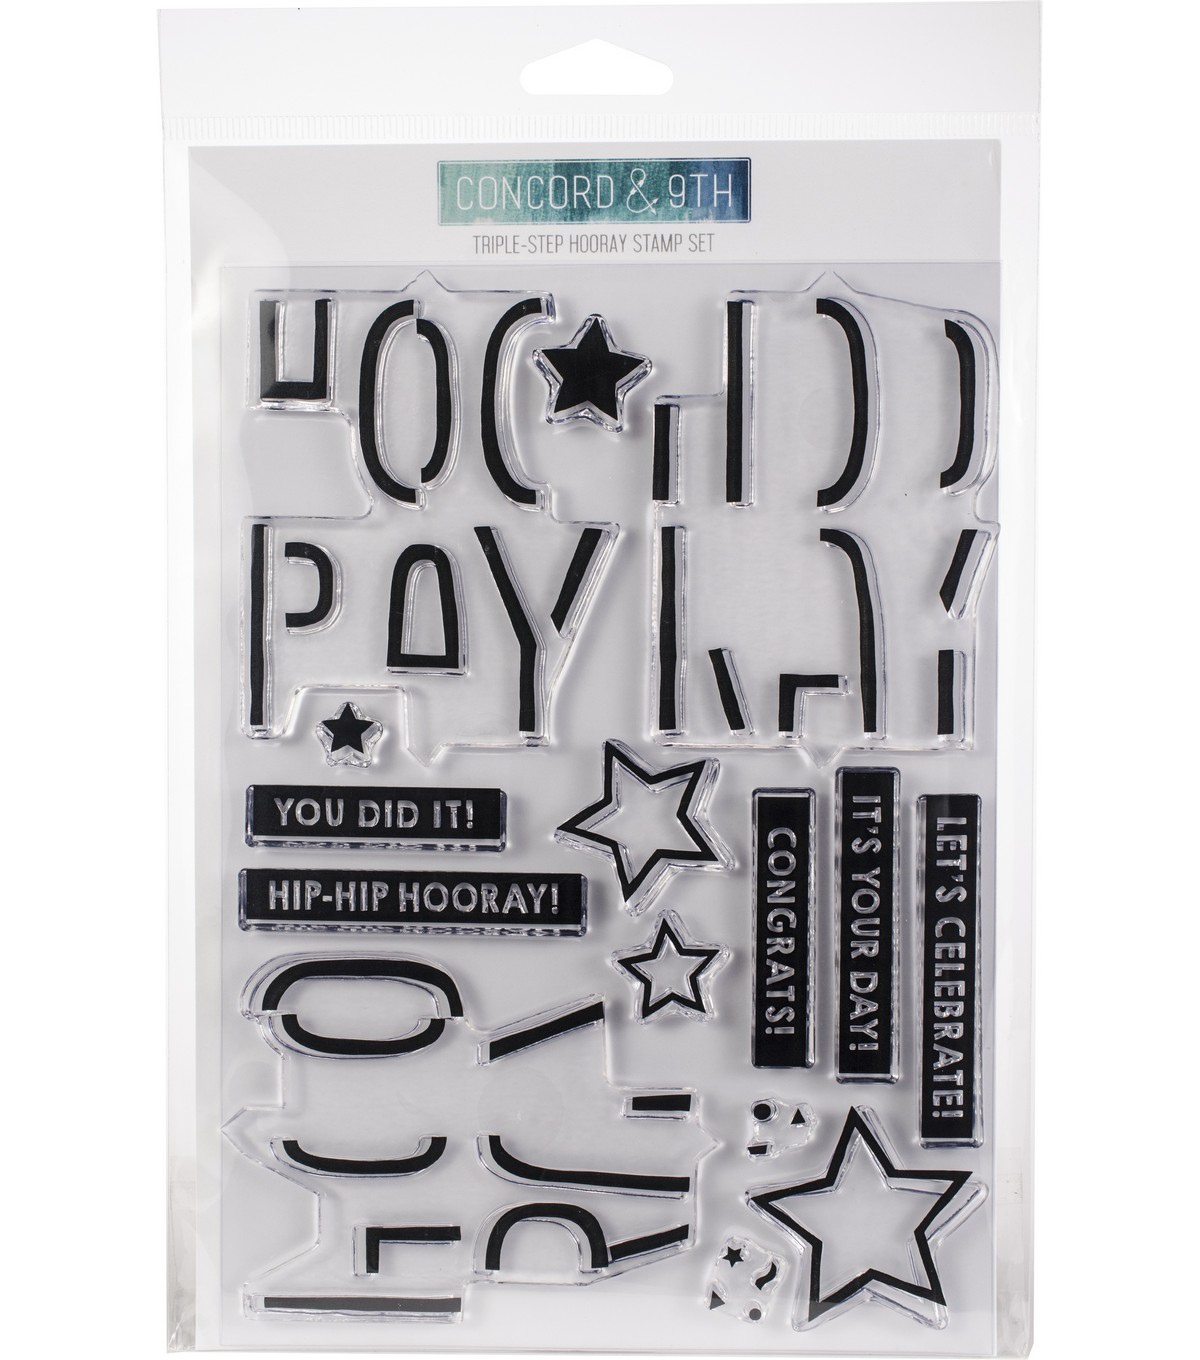 Concord & 9th 15 pk Clear Stamps-Triple-step Hooray